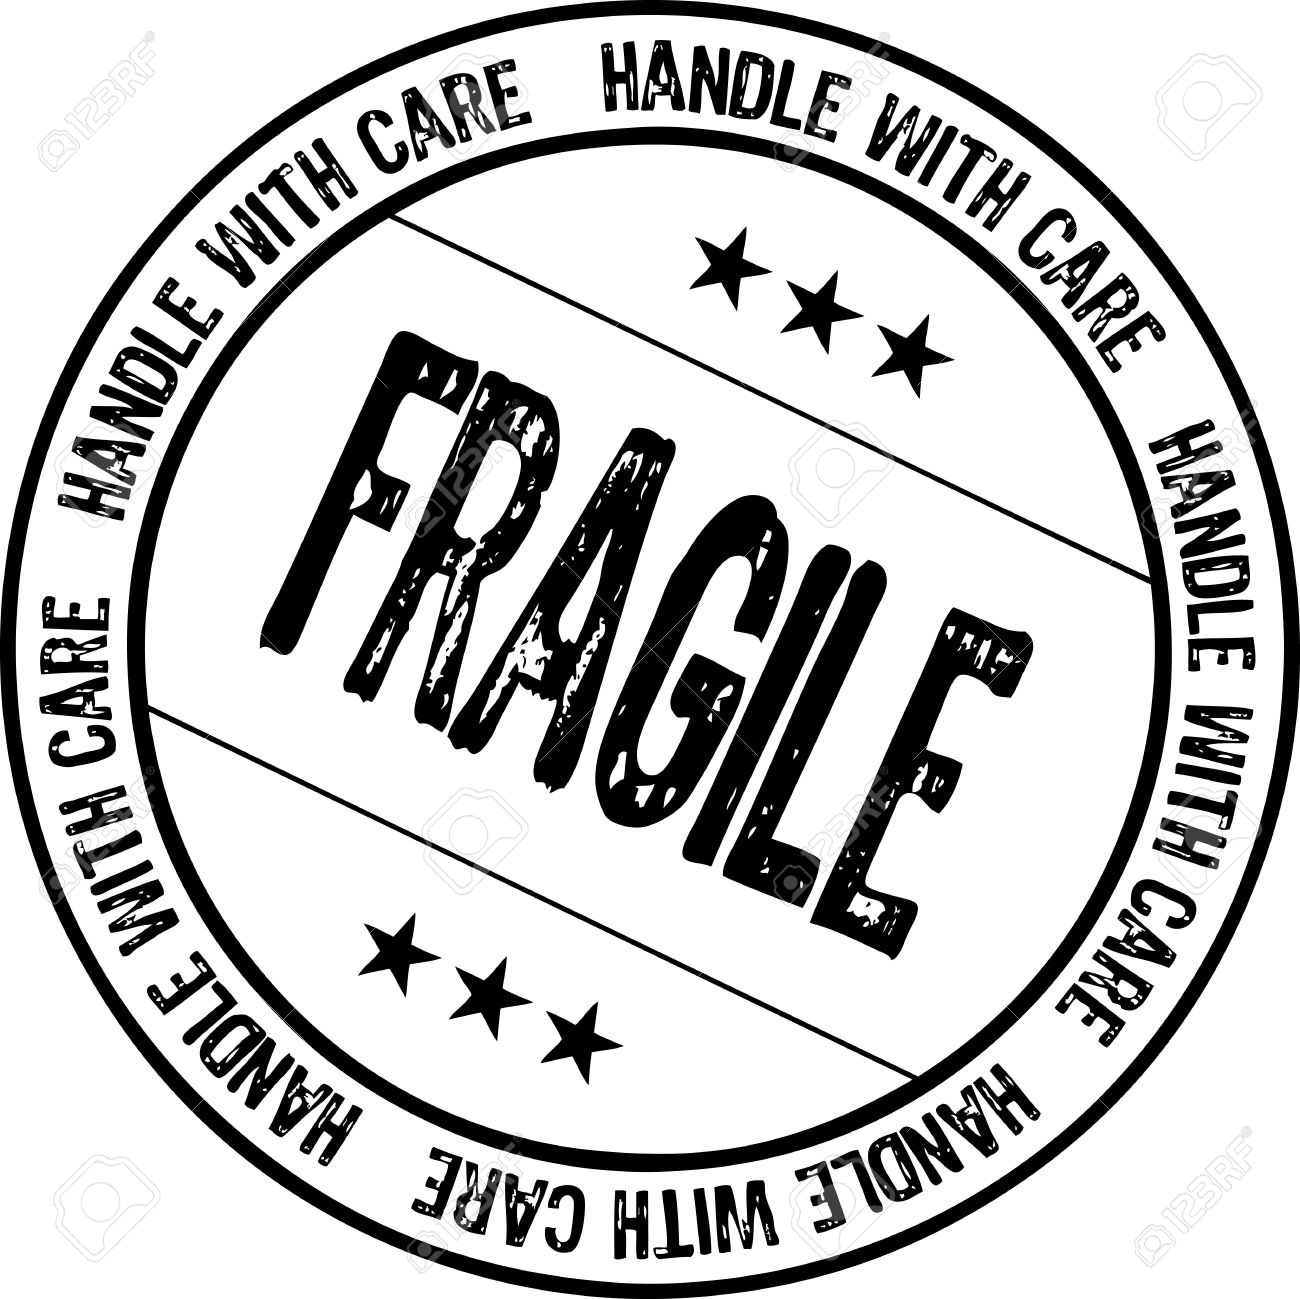 fragile - handle with care Stock Photo - 6778431